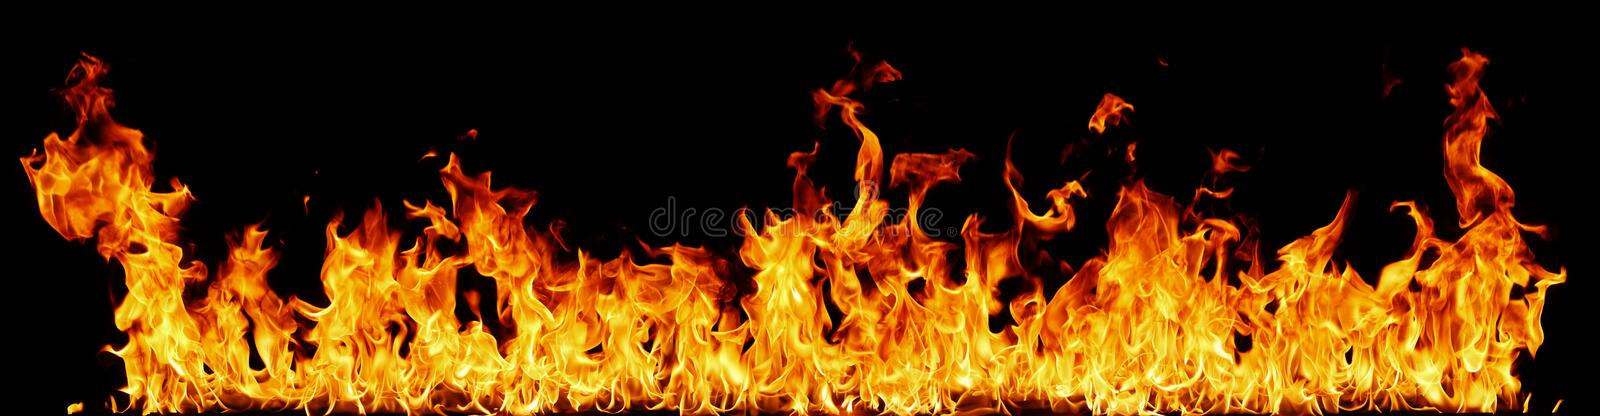 Abstract panoramic border of fire. Panoramic abstract background of burning red fire flames on black stock photo